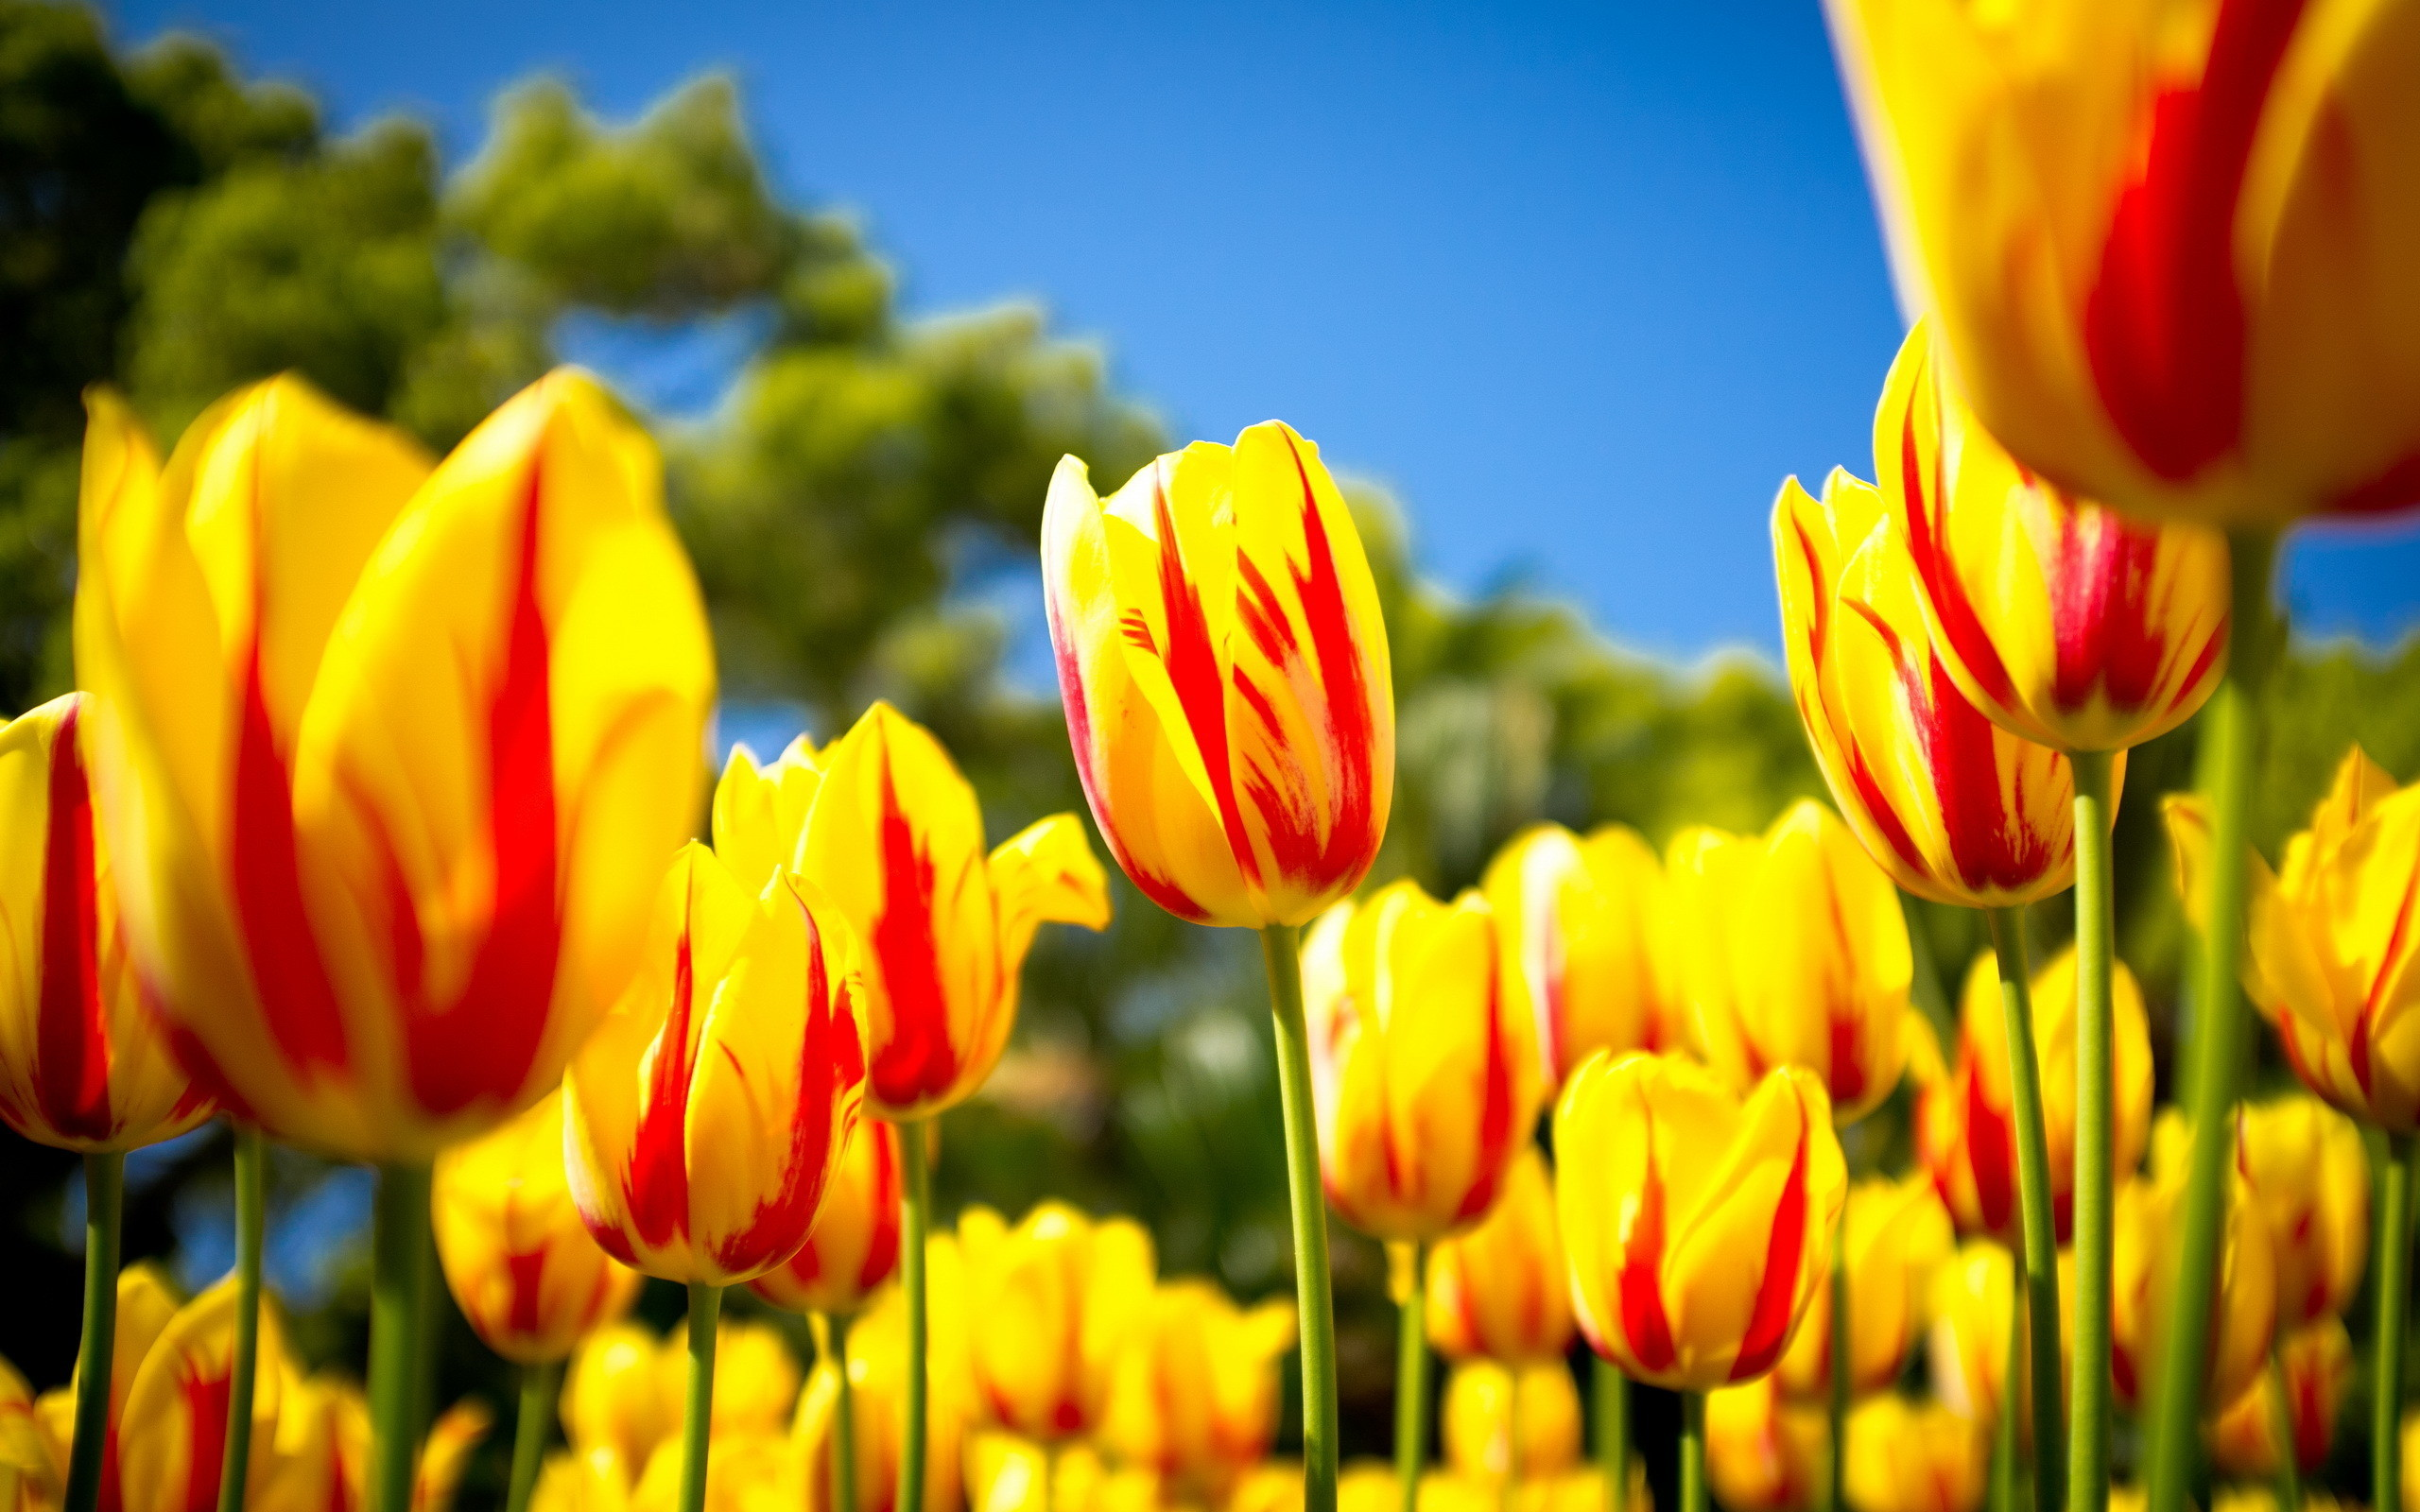 Nature HD Wallpaper with Yellow Tulips in Spring – HD Wallpapers for Free